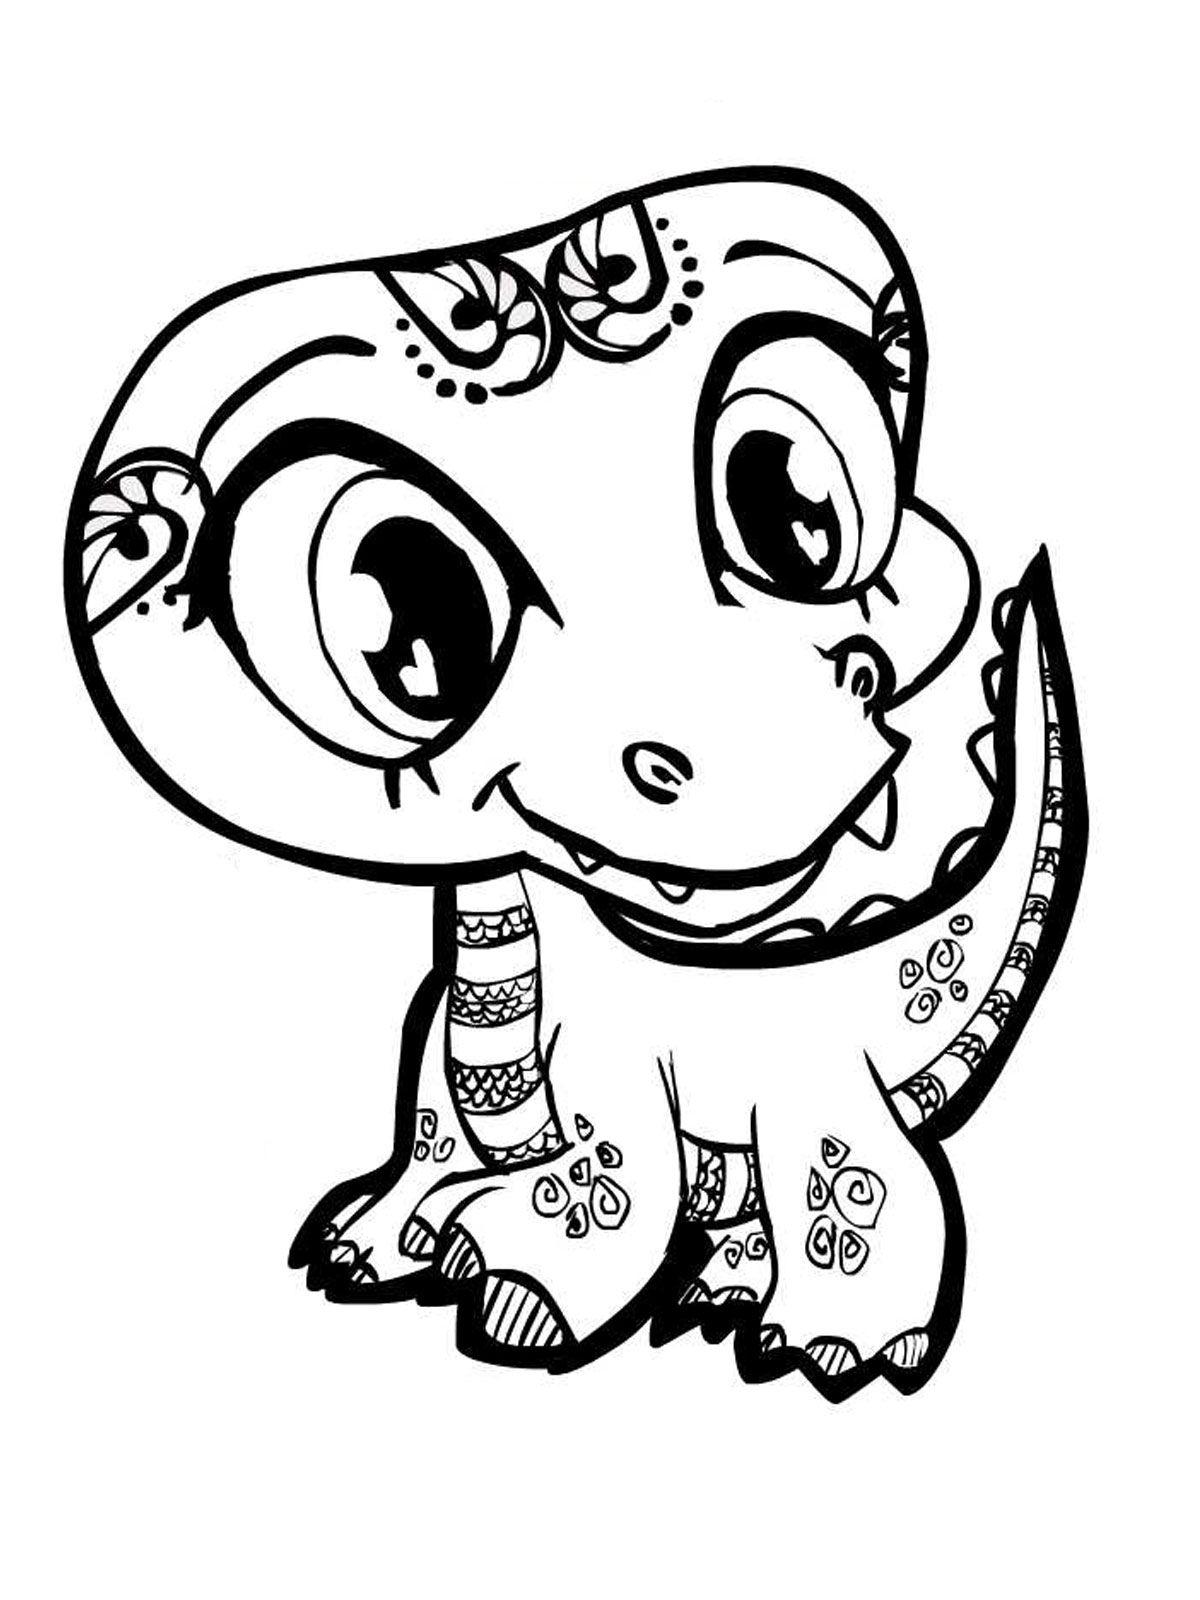 cute coloring pages animal coloring pages printable coloring pages coloring sheets free coloring coloring book coloring pages for teenagers coloring